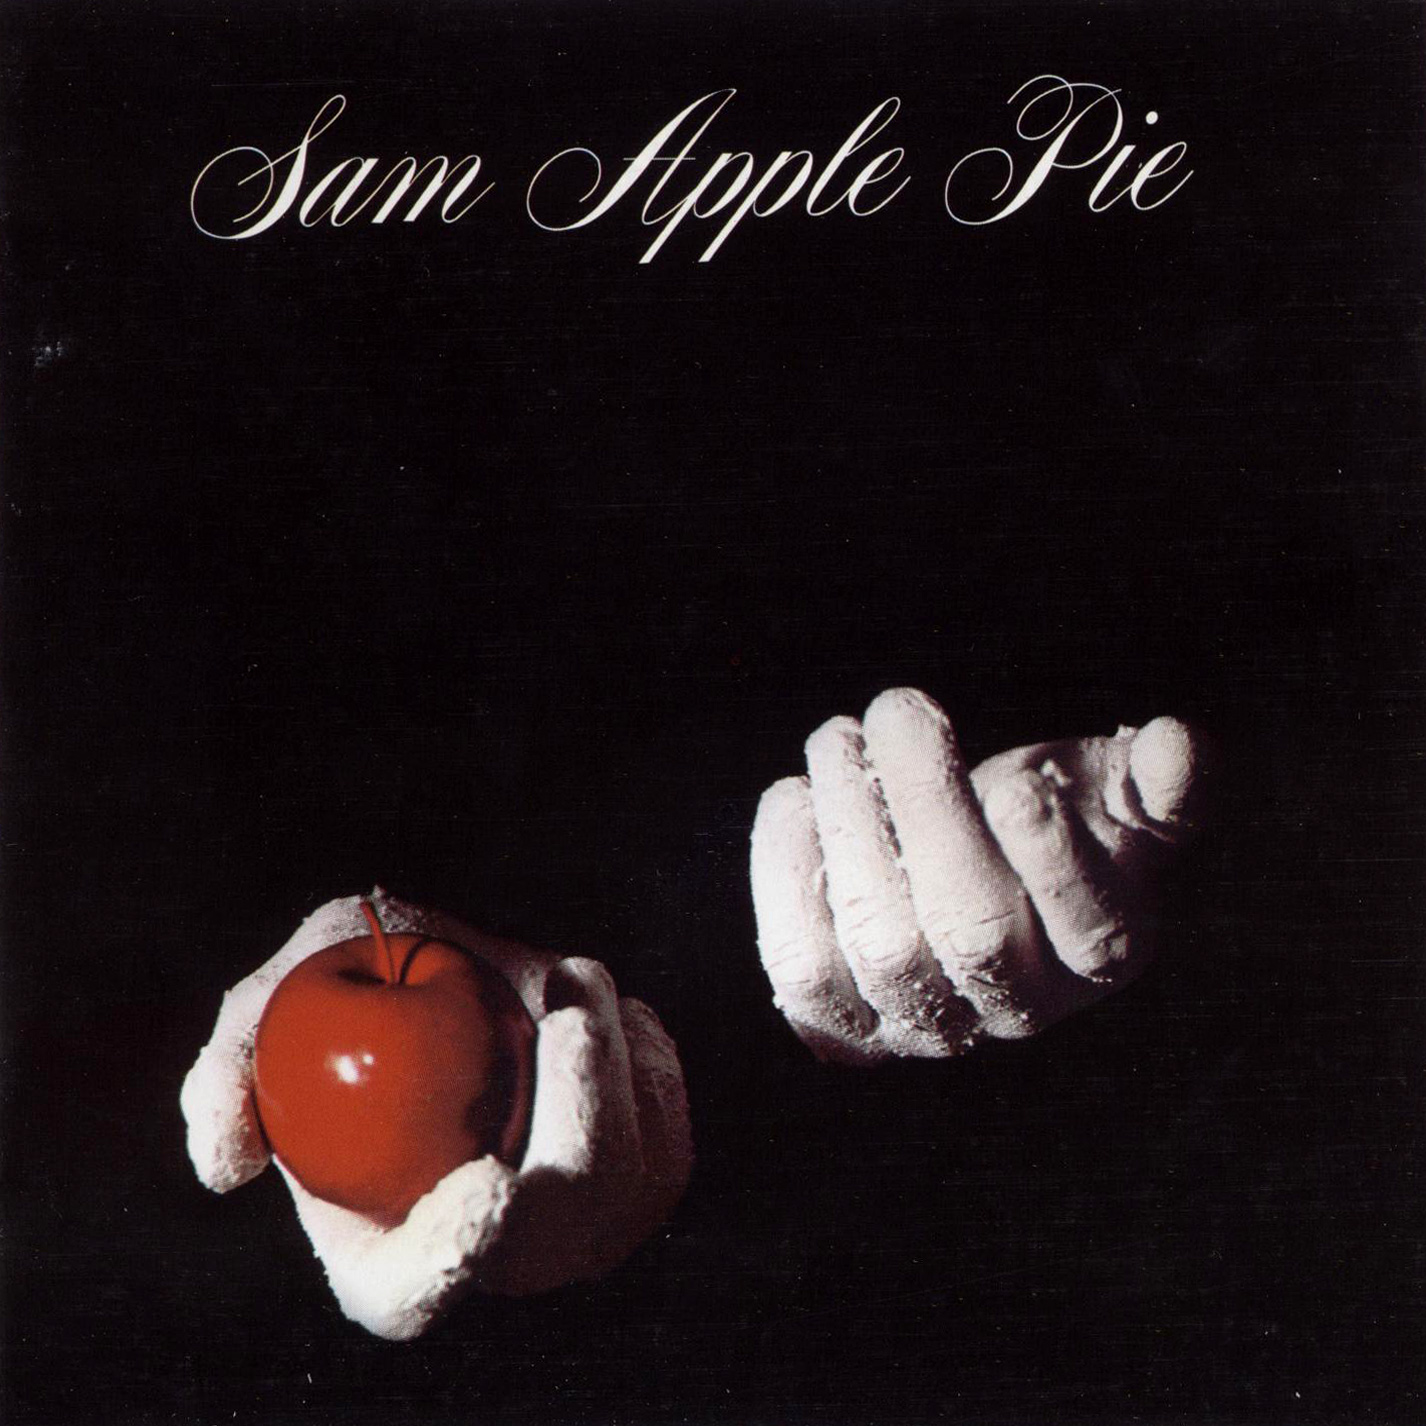 Sam apple pie lp